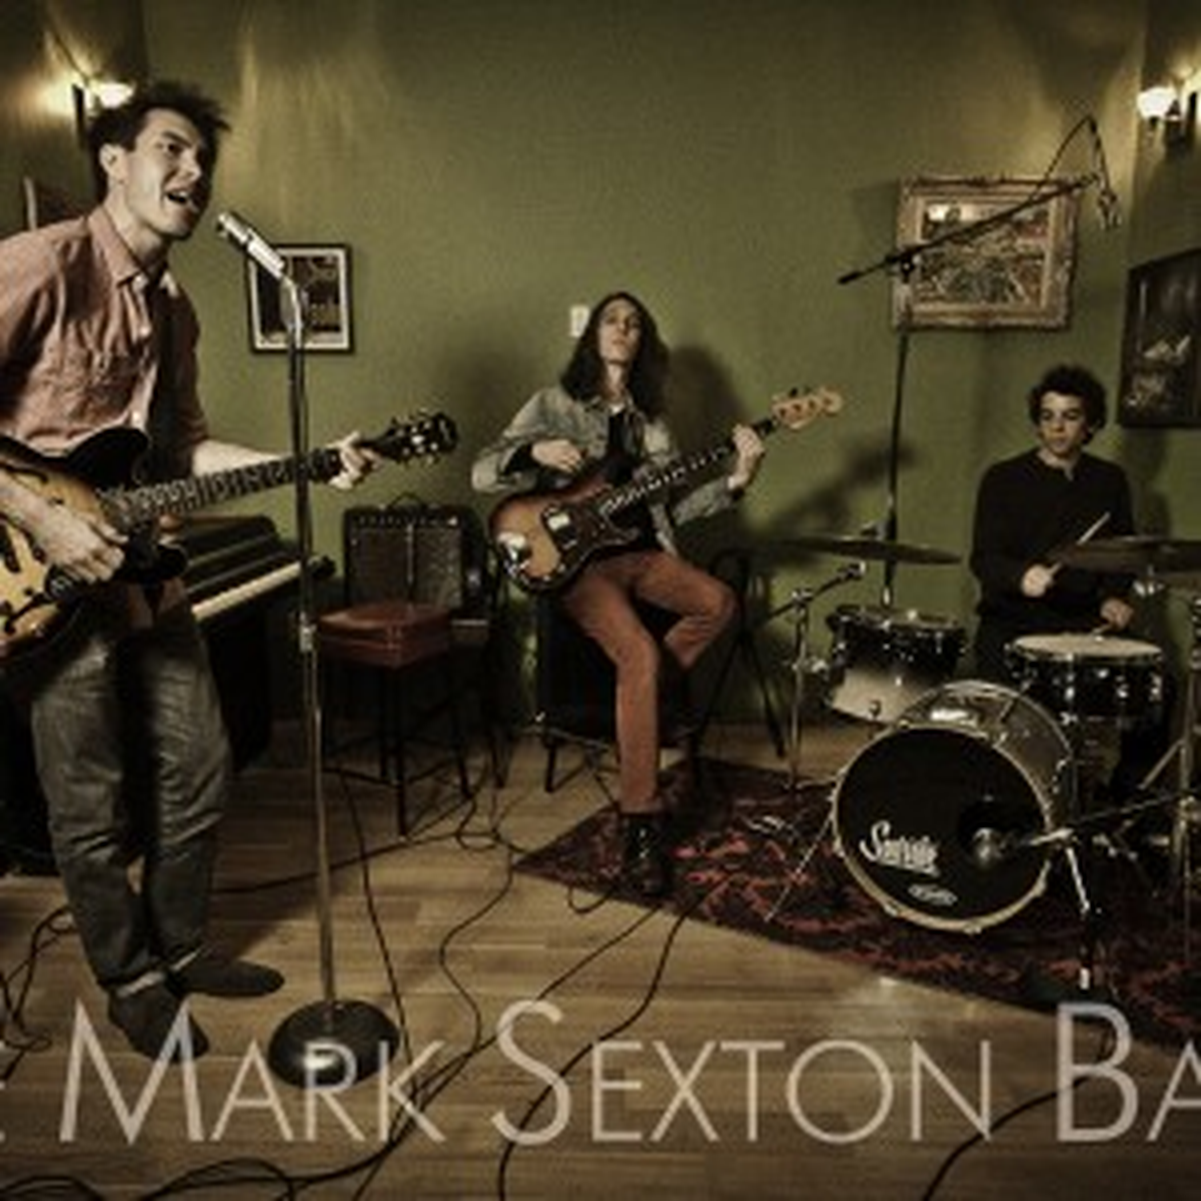 The Mark Sexton Band